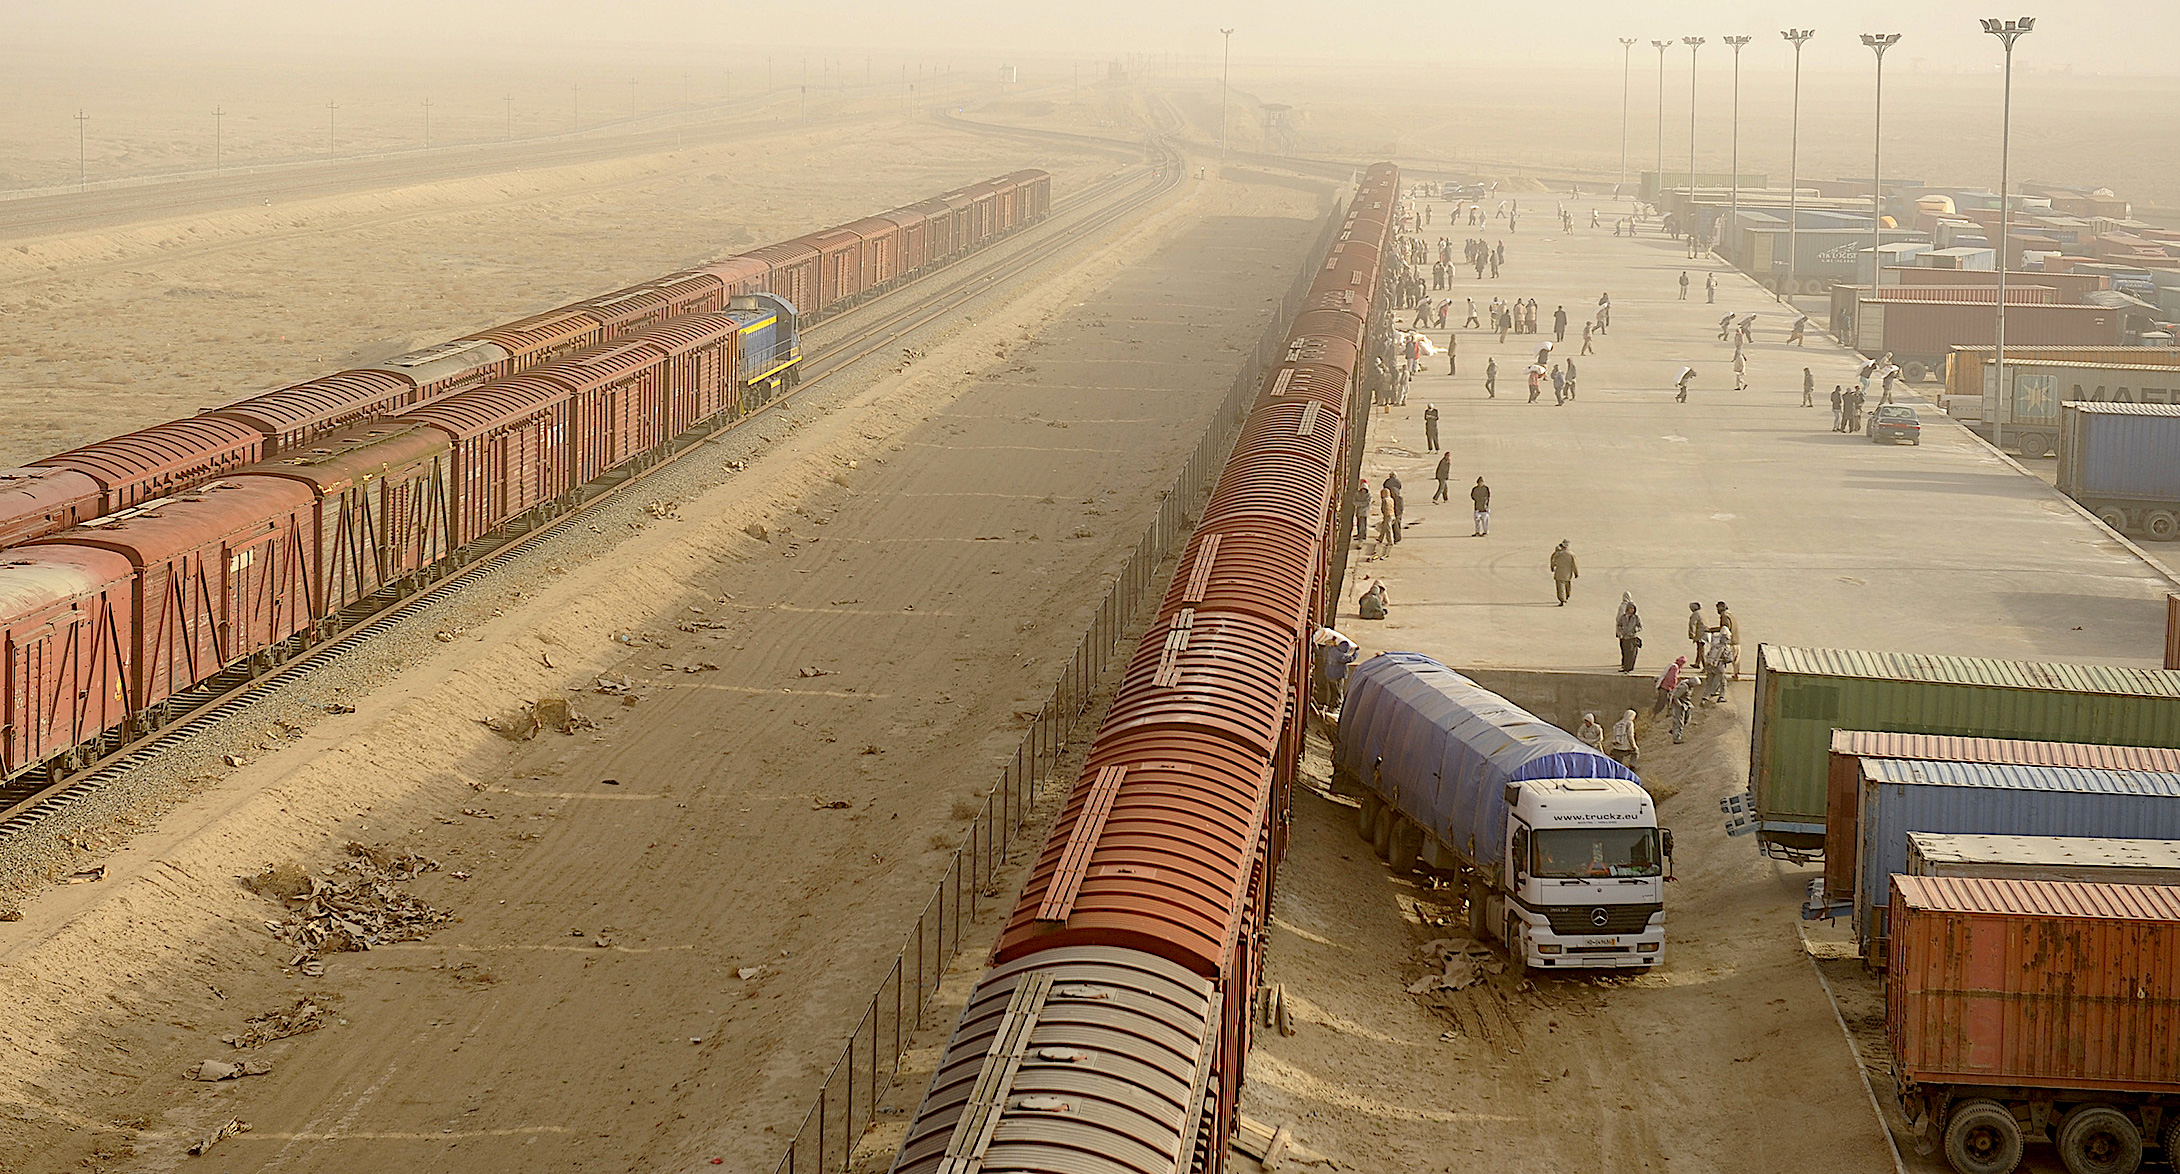 Afghan railway project closer to reality following Mirziyoyev's US visit